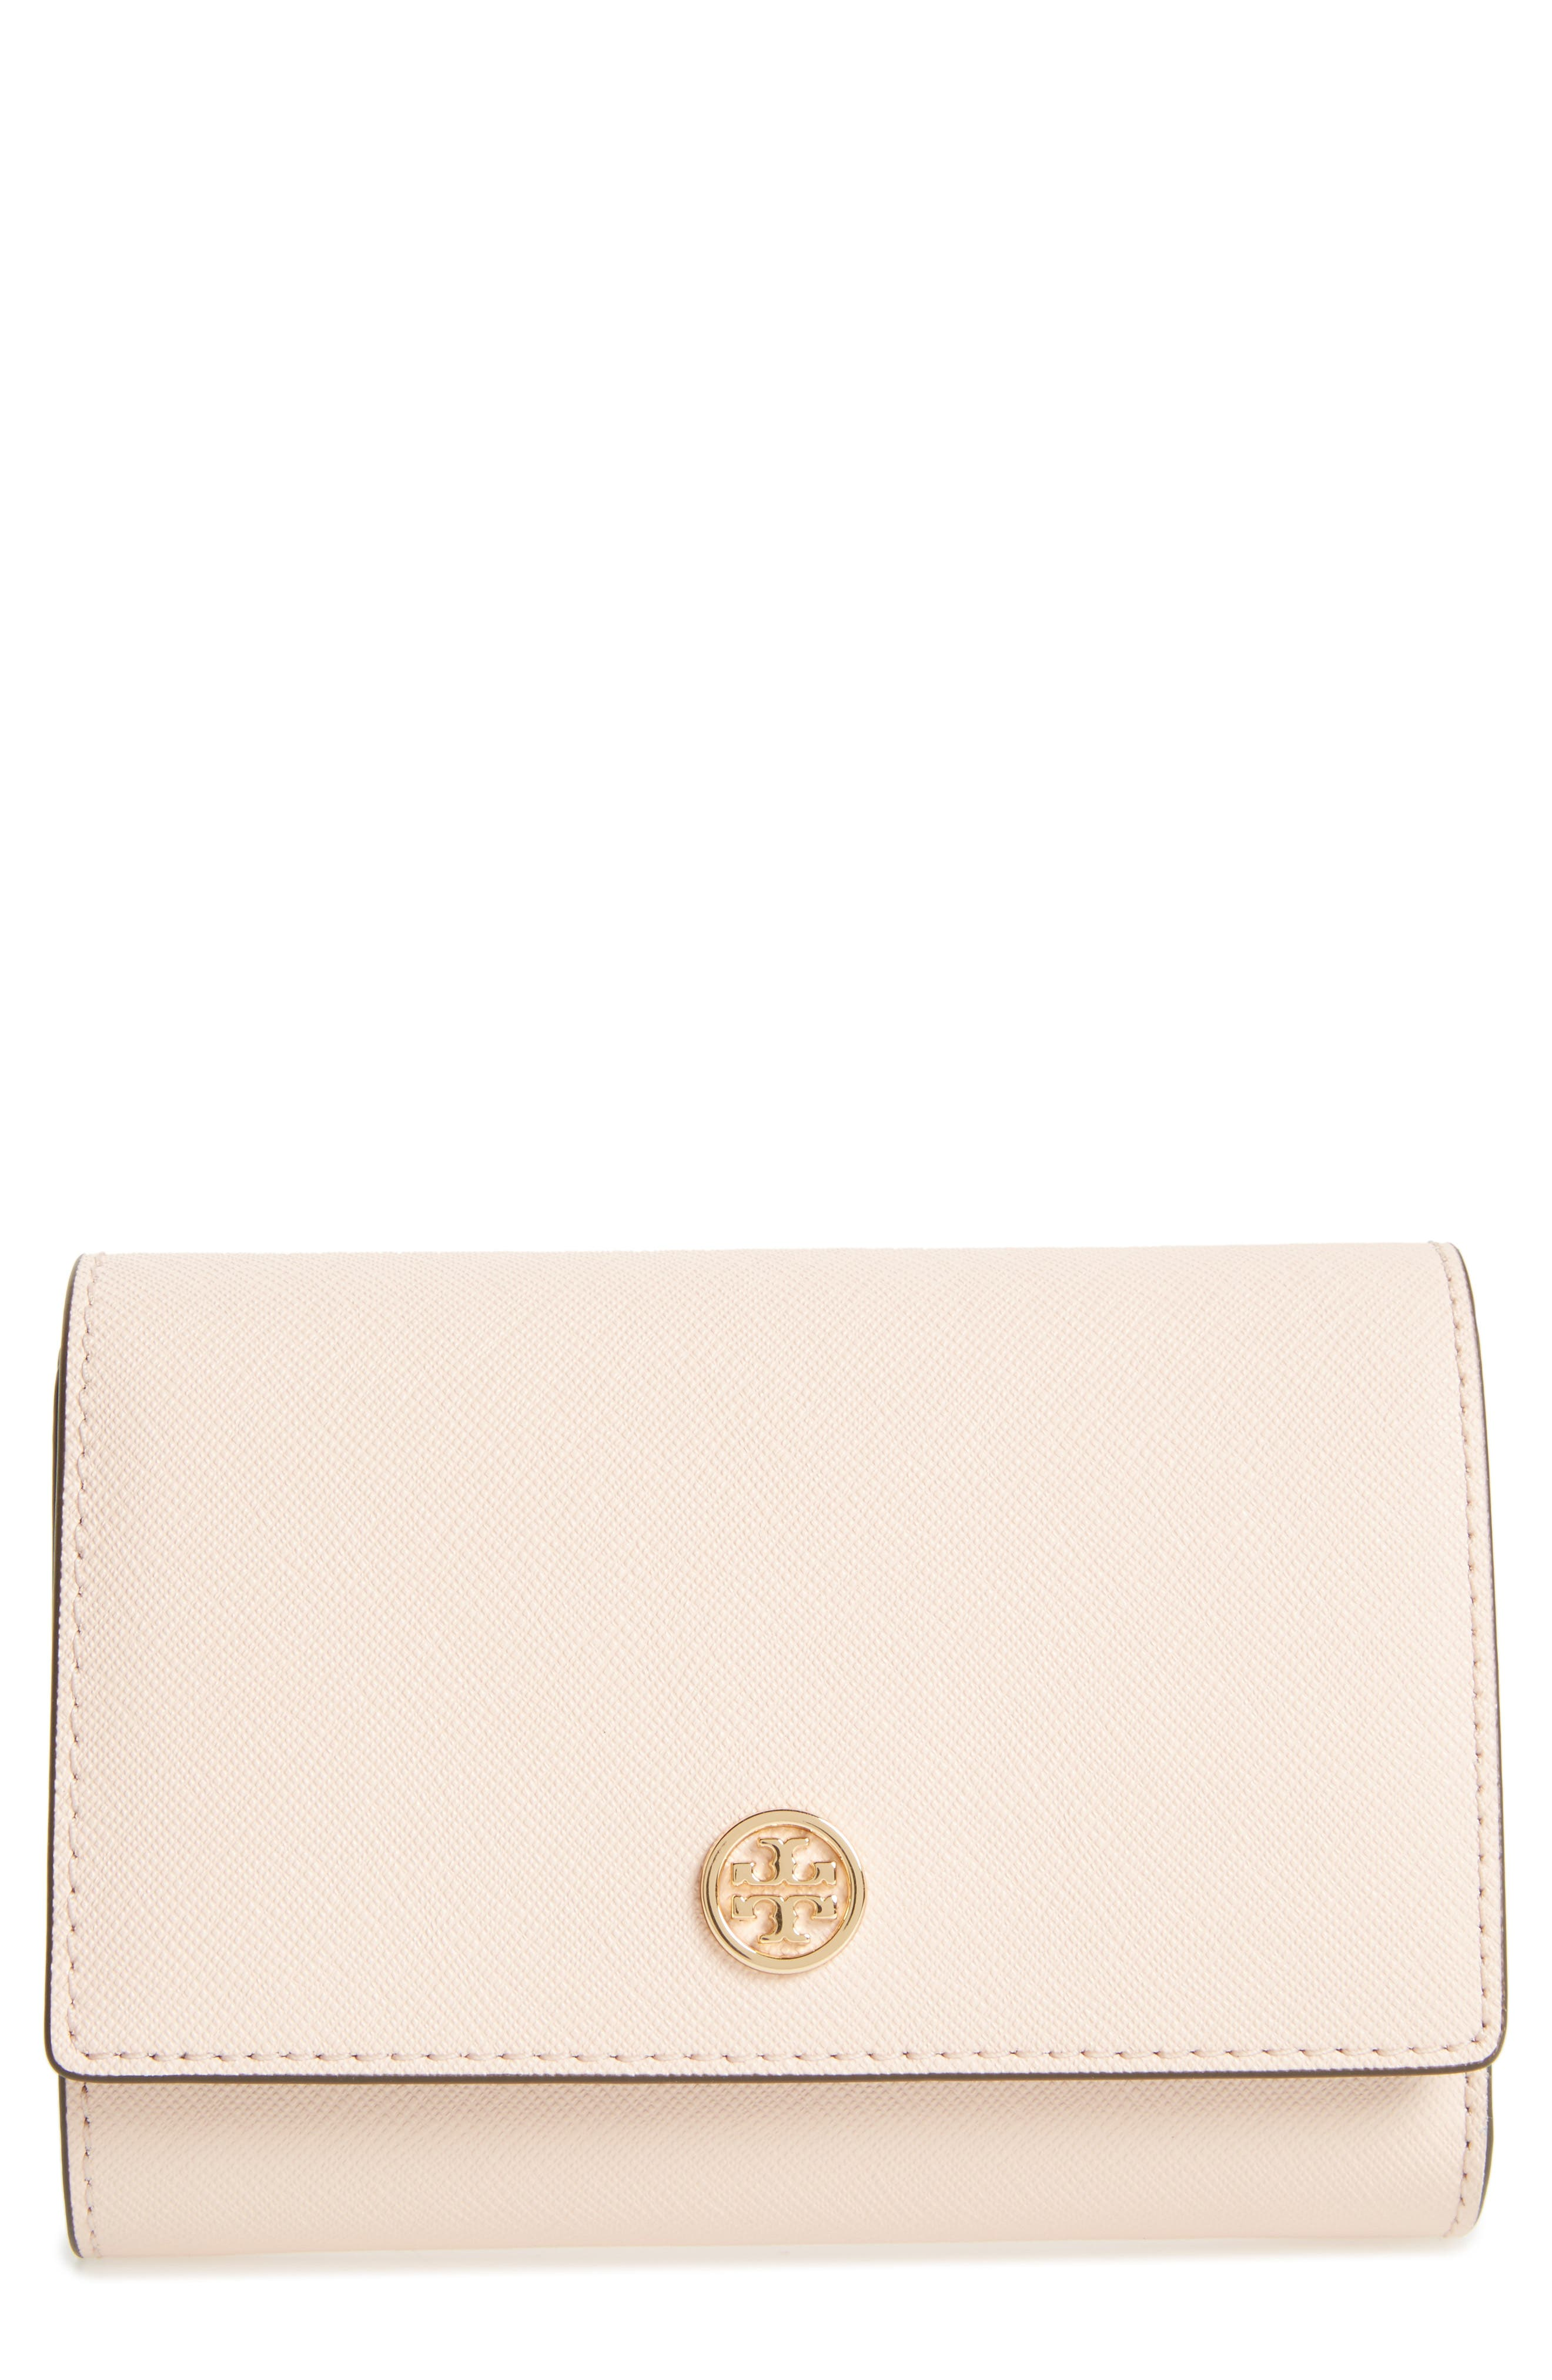 Robinson Medium Leather Wallet,                         Main,                         color, Pale Apricot / Royal Navy